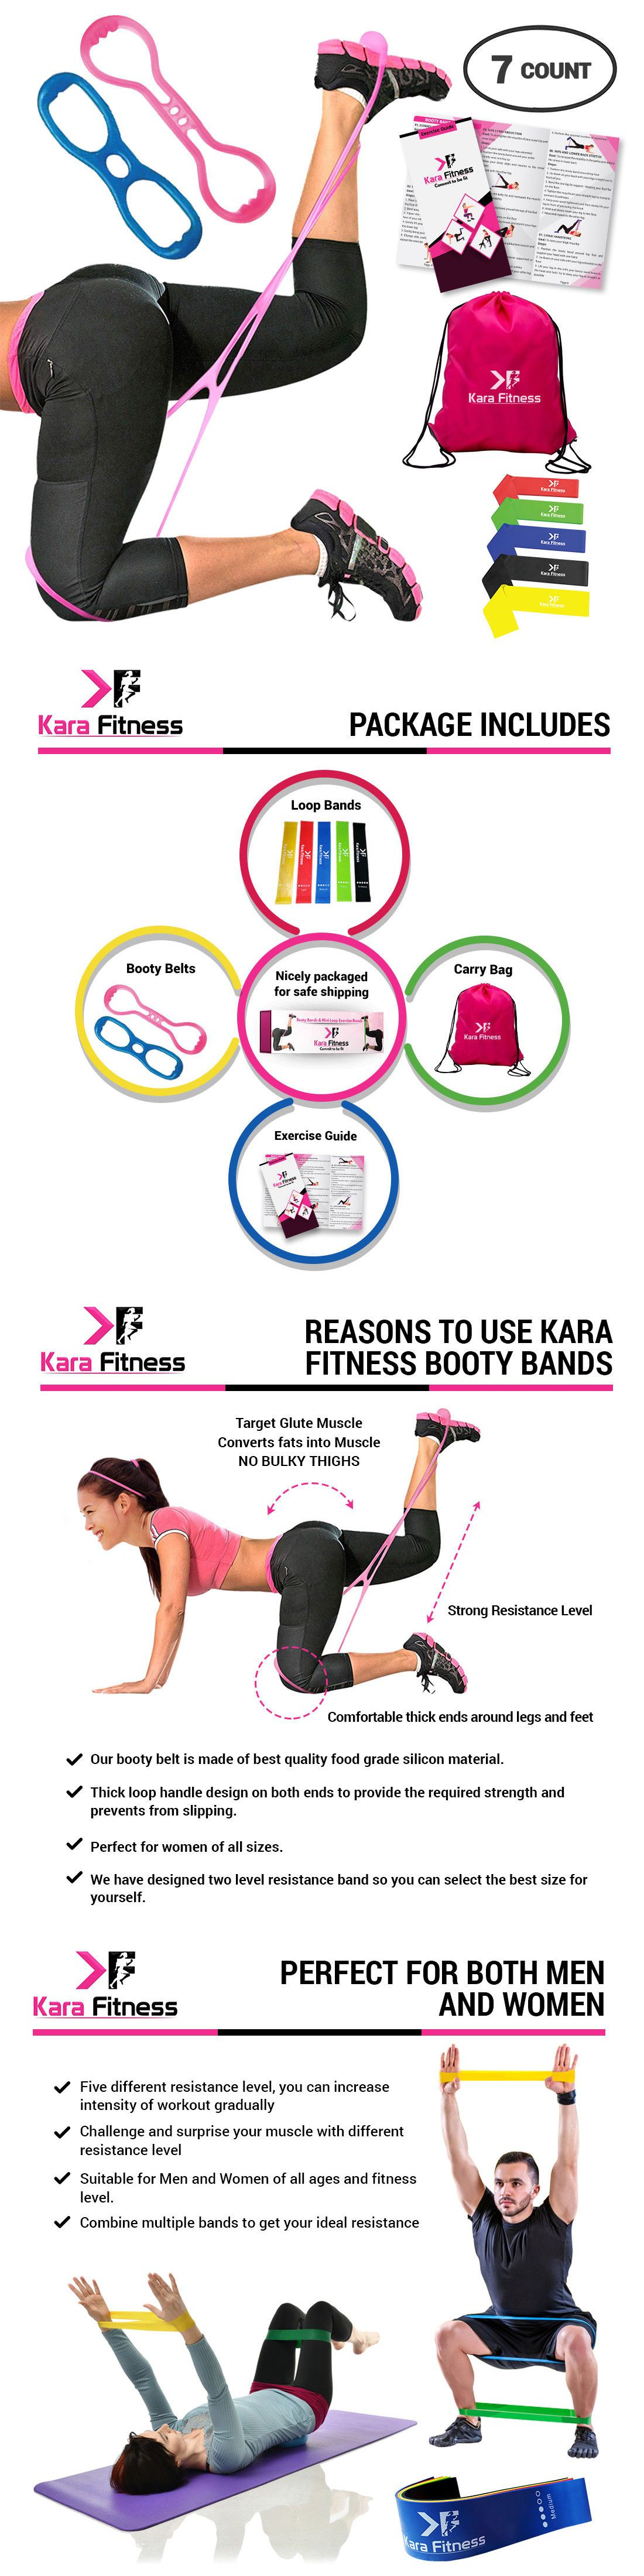 b7b899a21dea Fitness Equipment and Gear 28064  Kara Fitness Booty Belt Resistance Loop Exercise  Bands Work Out Guide Gym Bag -  BUY IT NOW ONLY   23 on eBay!